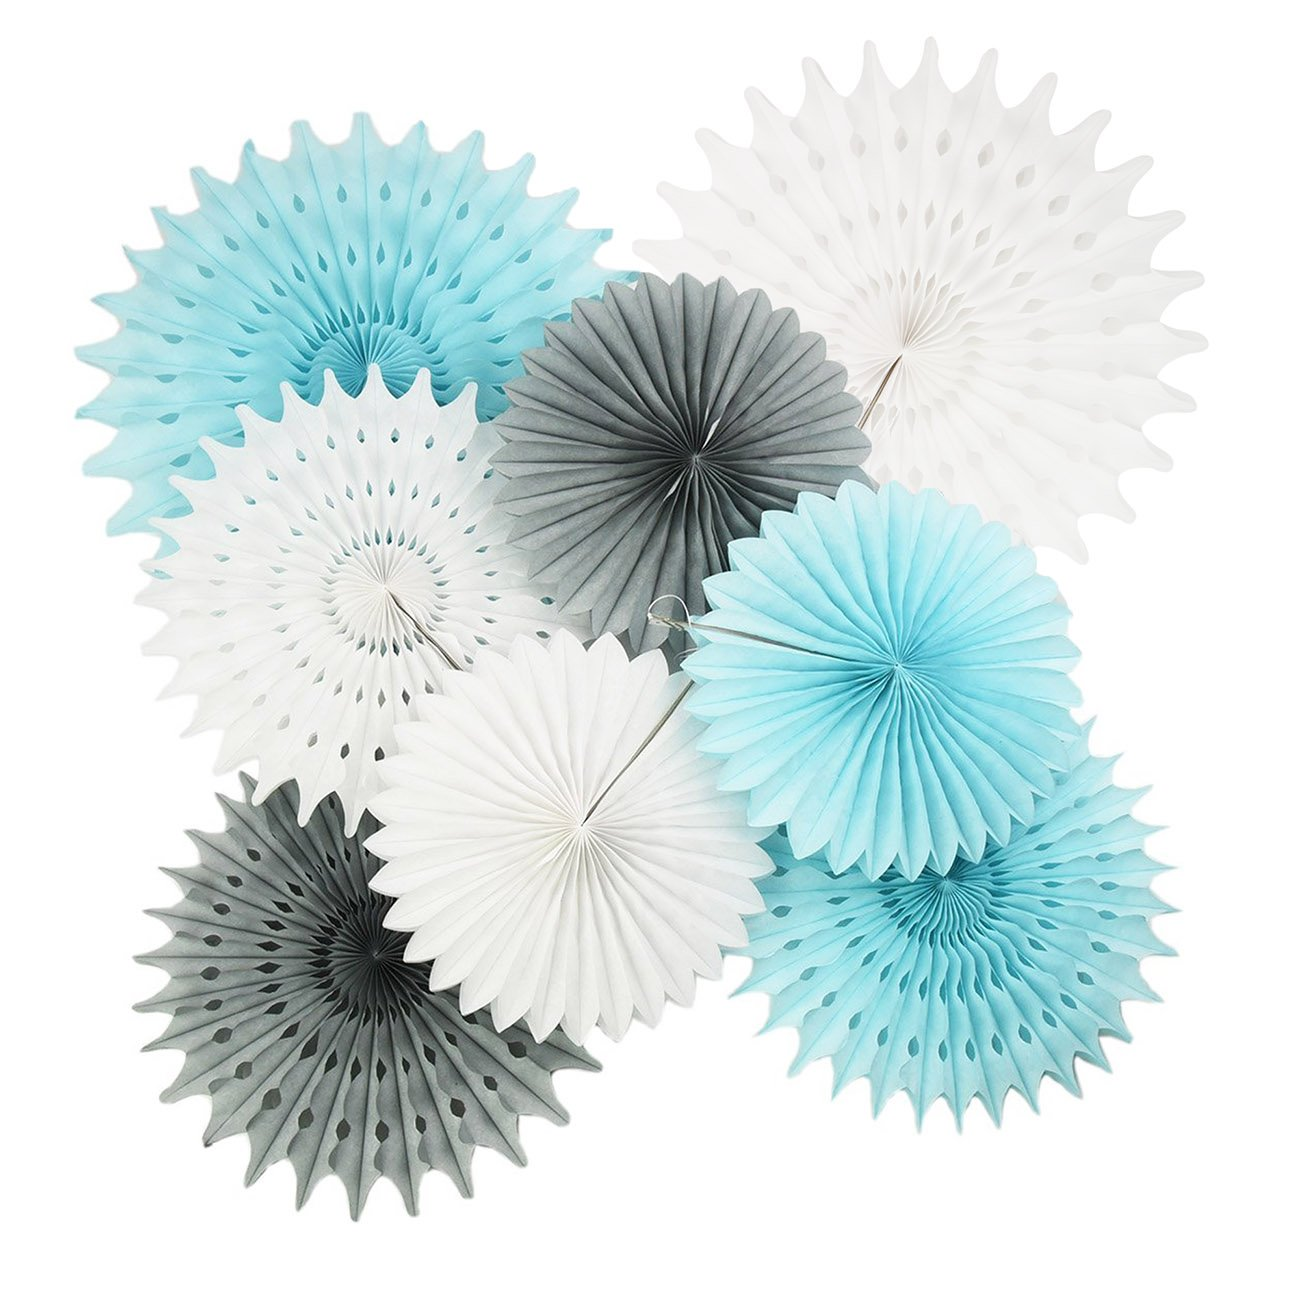 Baby Blue White Grey Baby Boy Baby Shower Decorations/Party Decorations First Birthday Boy Decorations Tissue Pom Pom Flower 8pcs Tissue Paper Fan for Baby Shower Decorations Boy